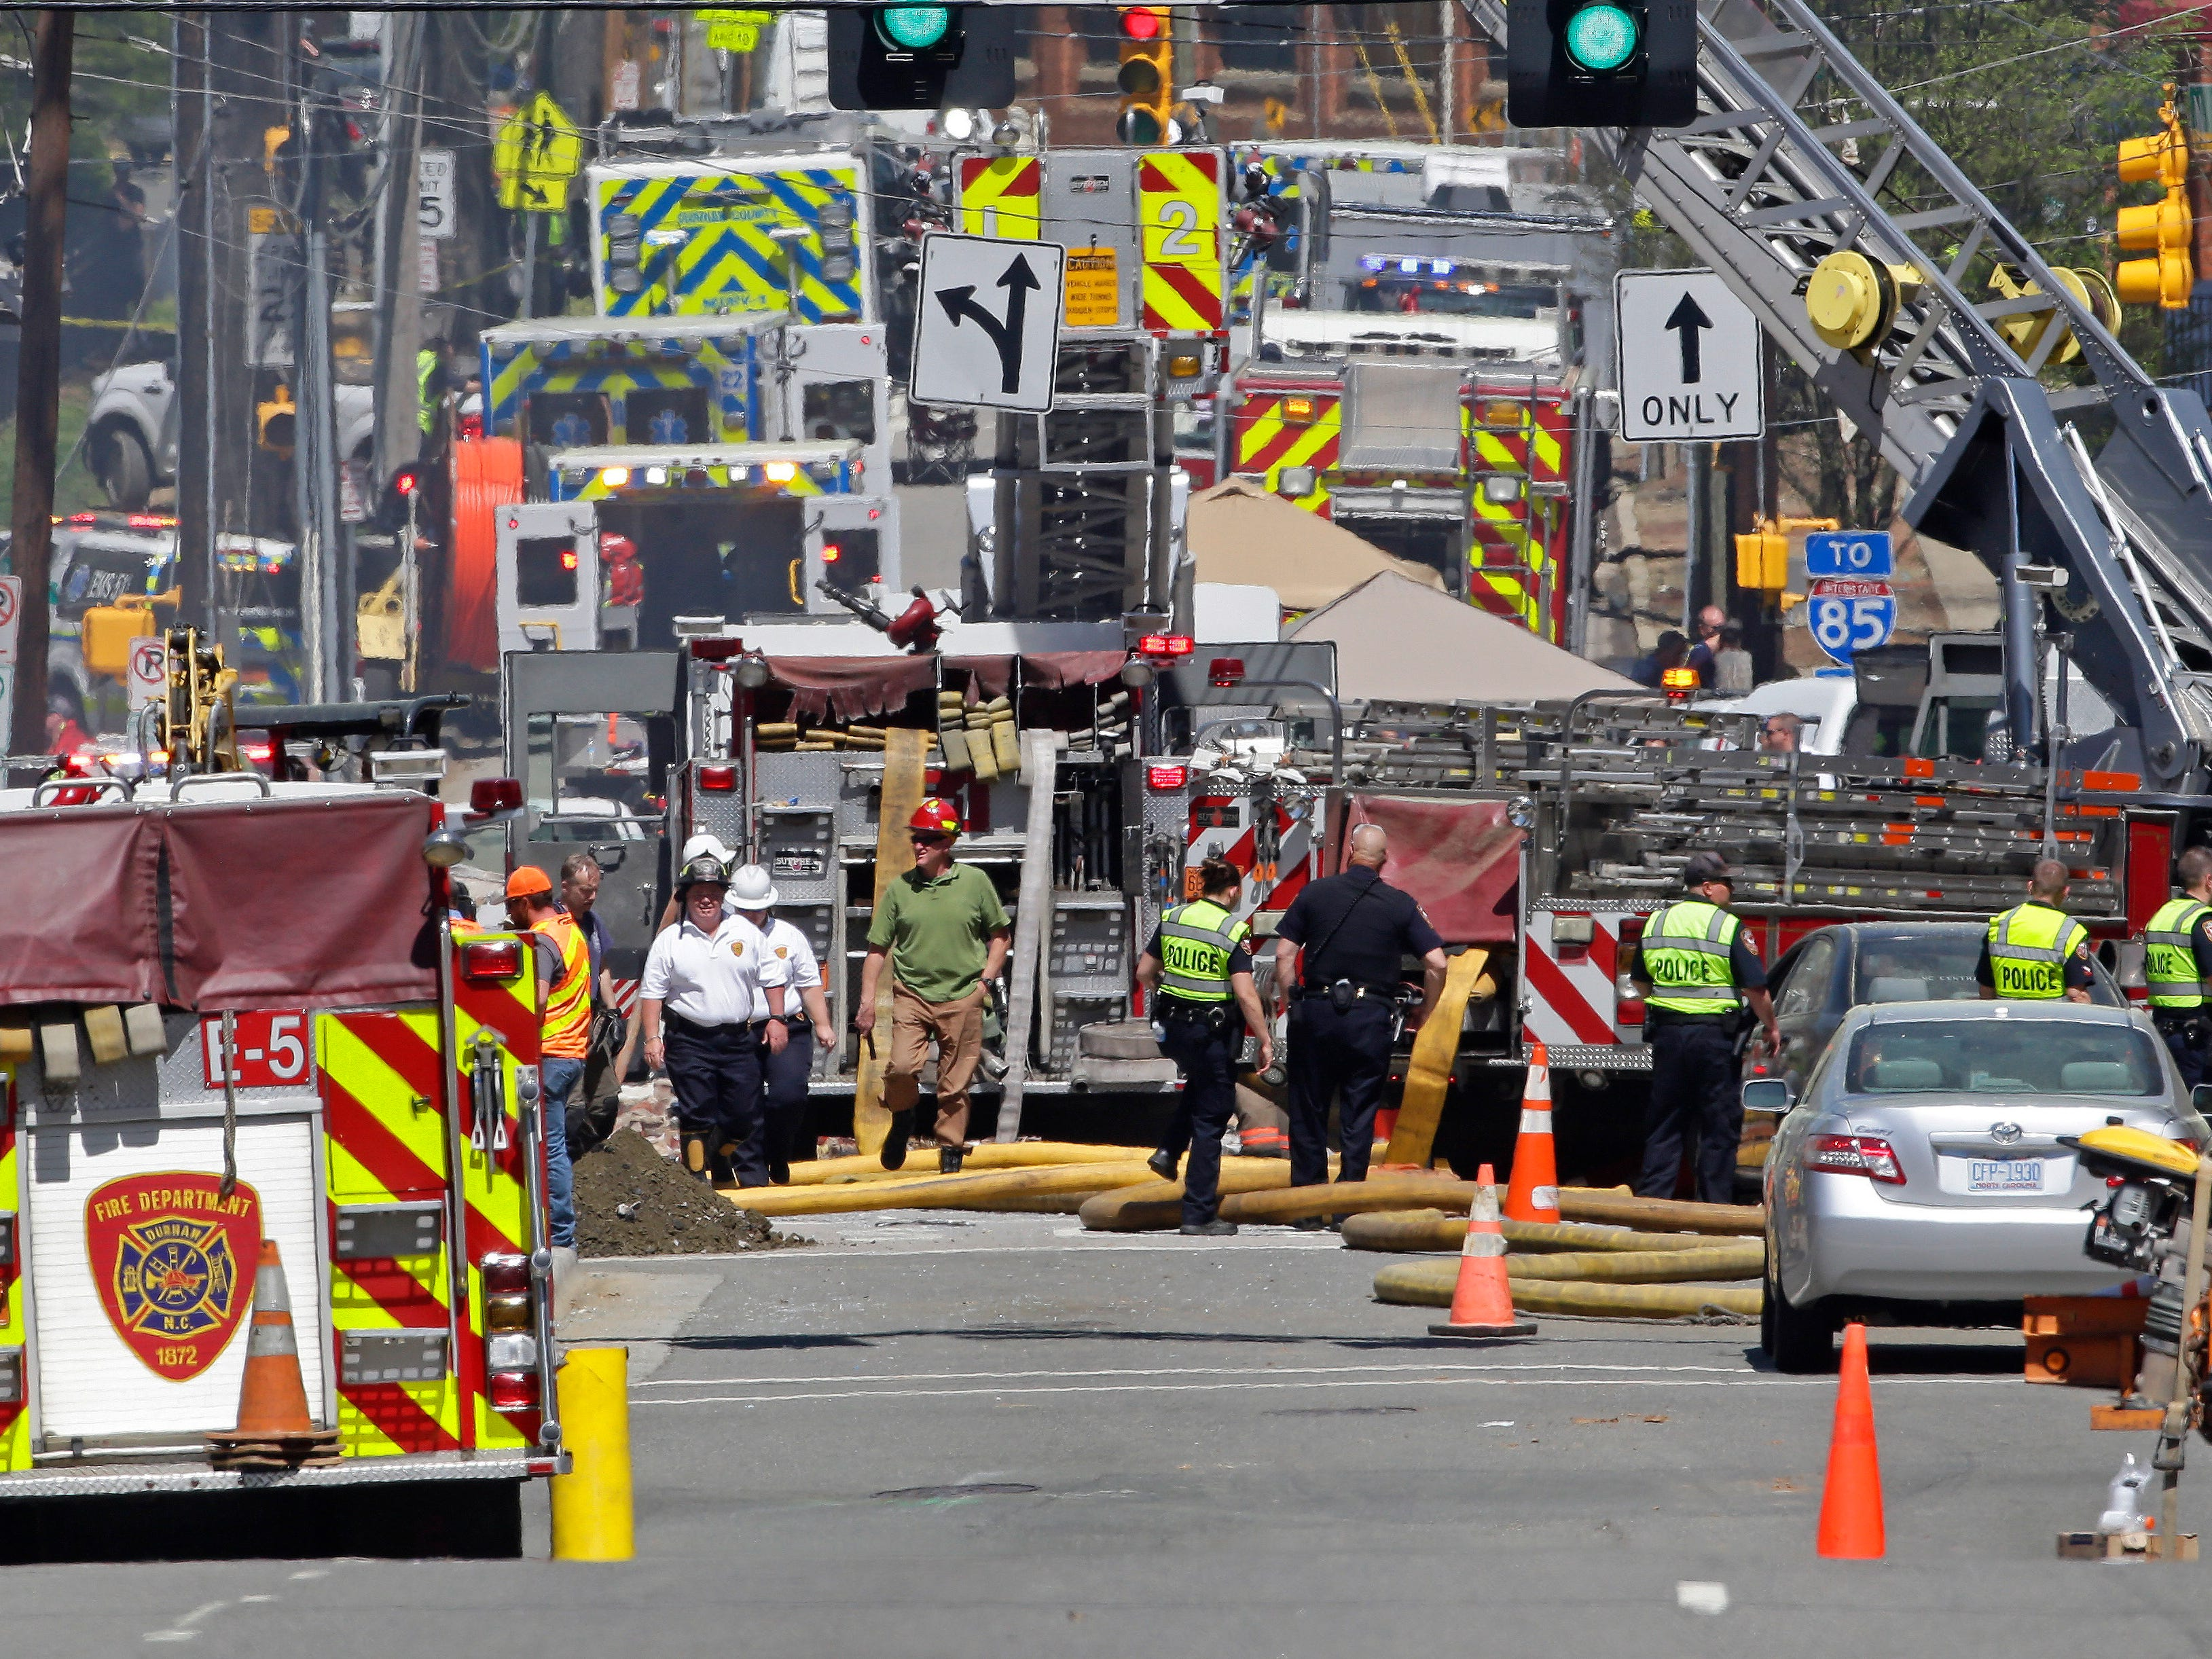 Firefighters and emergency personnel work the scene of an explosion and building fire in downtown Durham, N.C., Wednesday, April 10, 2019.